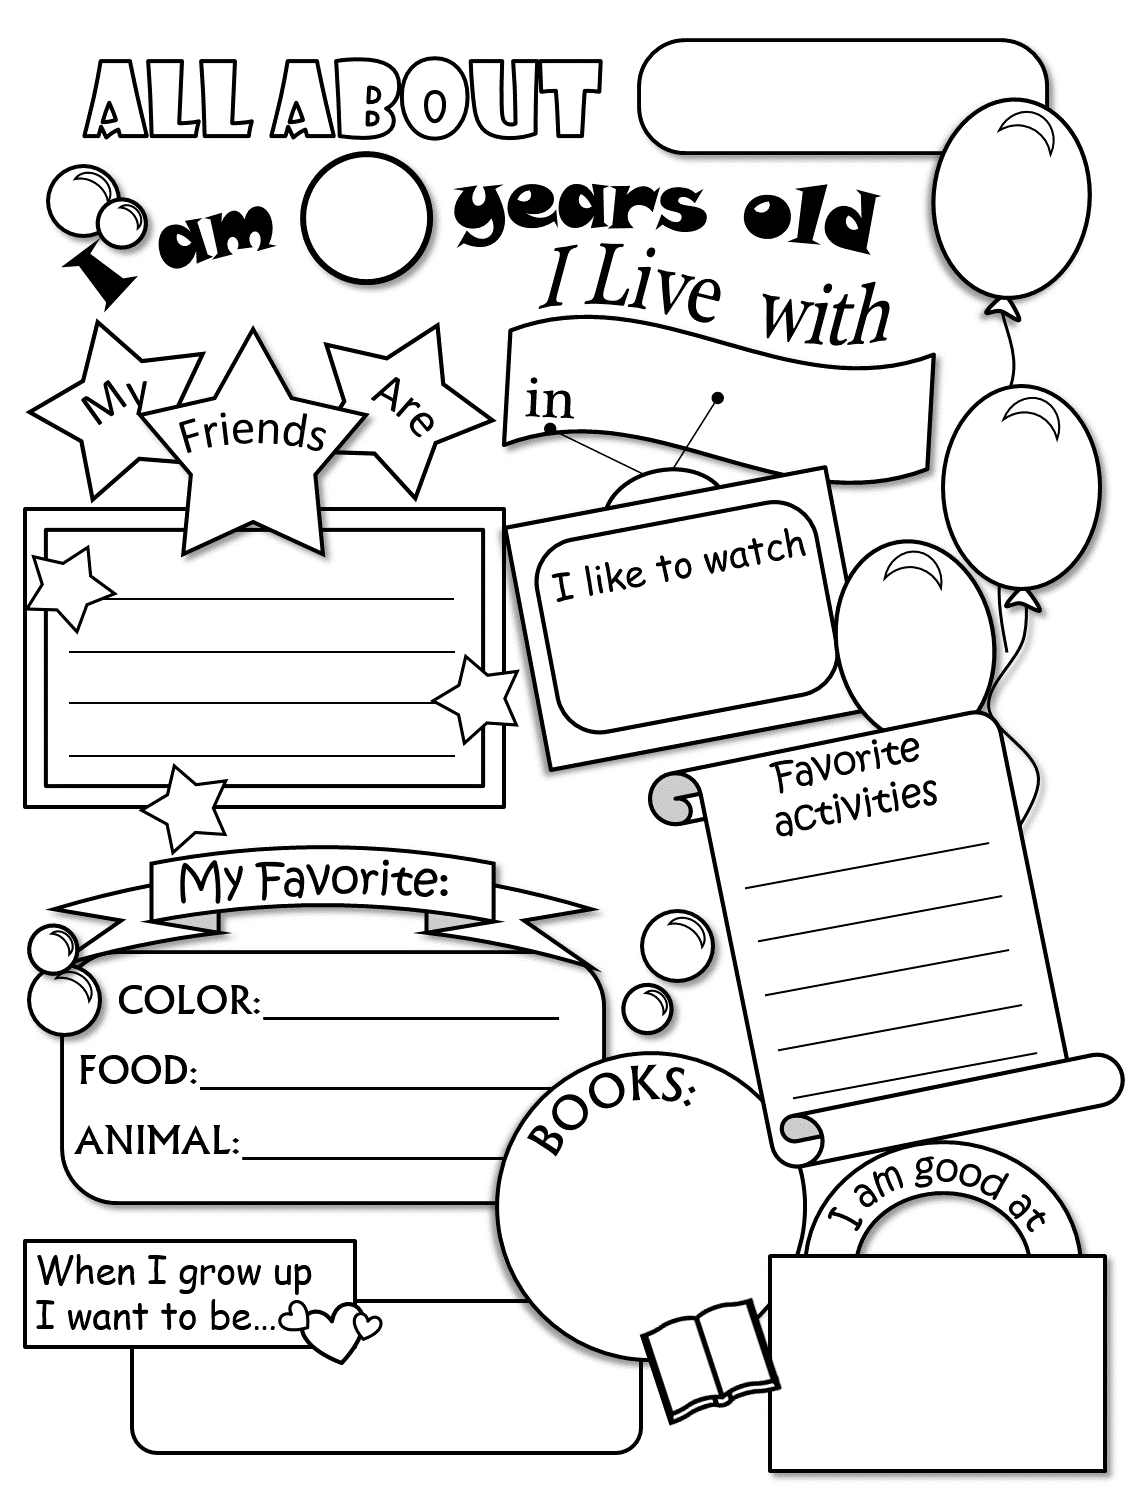 All About Me Worksheet - All About Me Free Printable